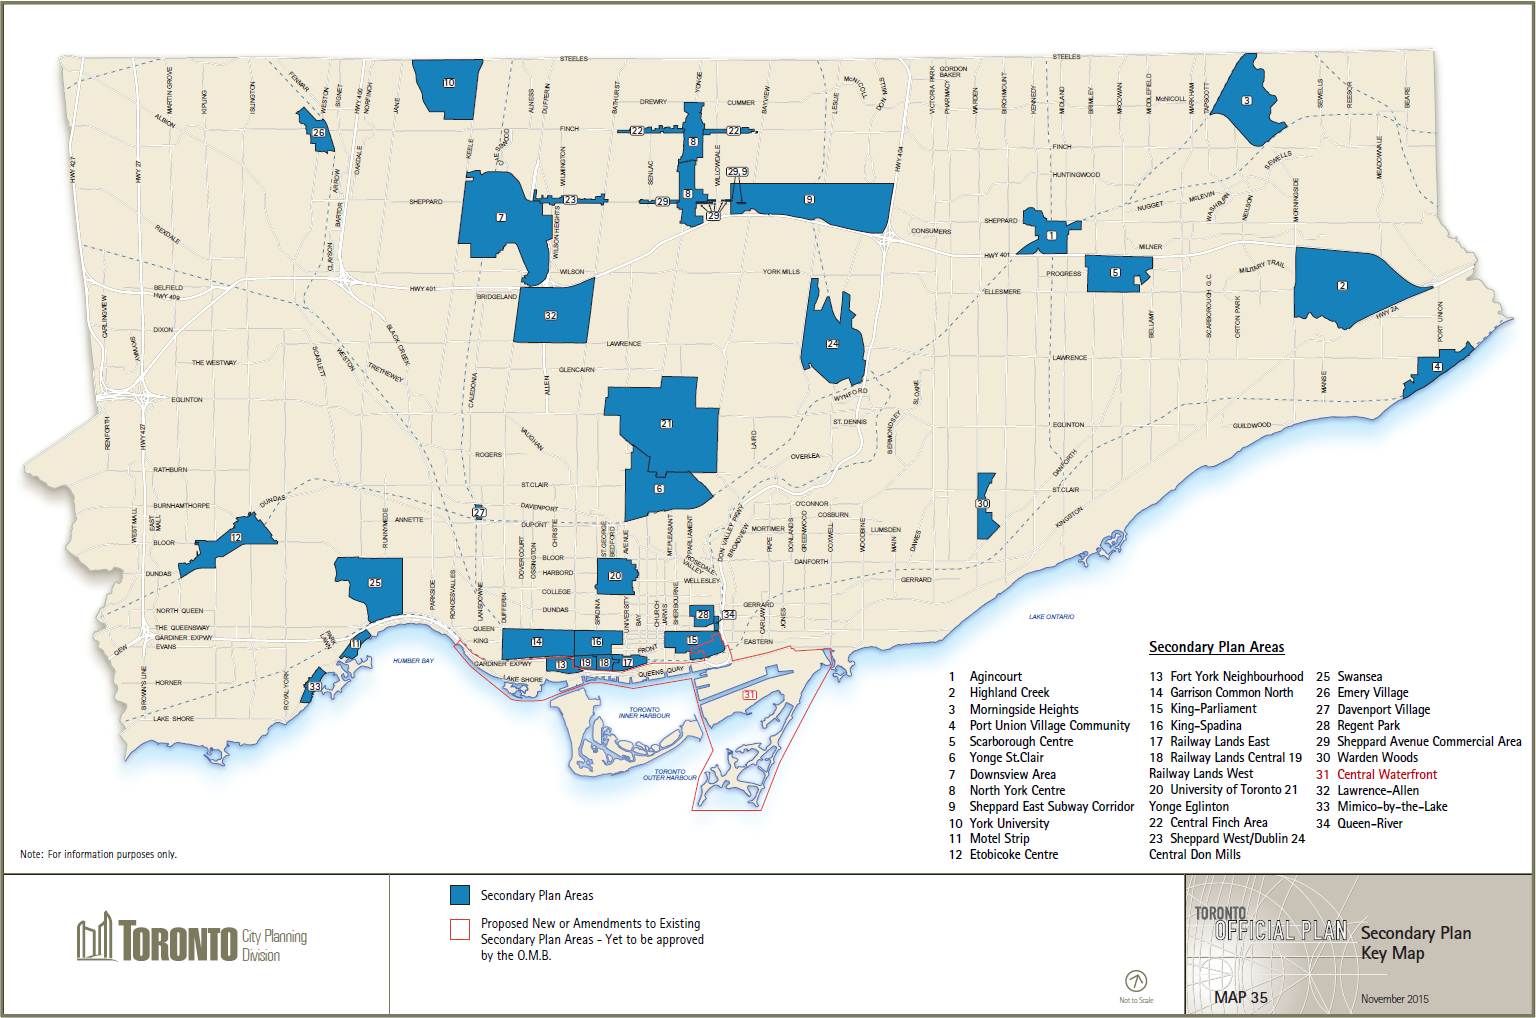 Map 35 – Secondary Plan Key Map: This map illustrates the location and boundary of the Secondary Plan Areas of the Toronto Official Plan and the proposed new or amendments to existing Secondary Plan Areas that are yet to be approved by the Ontario Municipal Board.